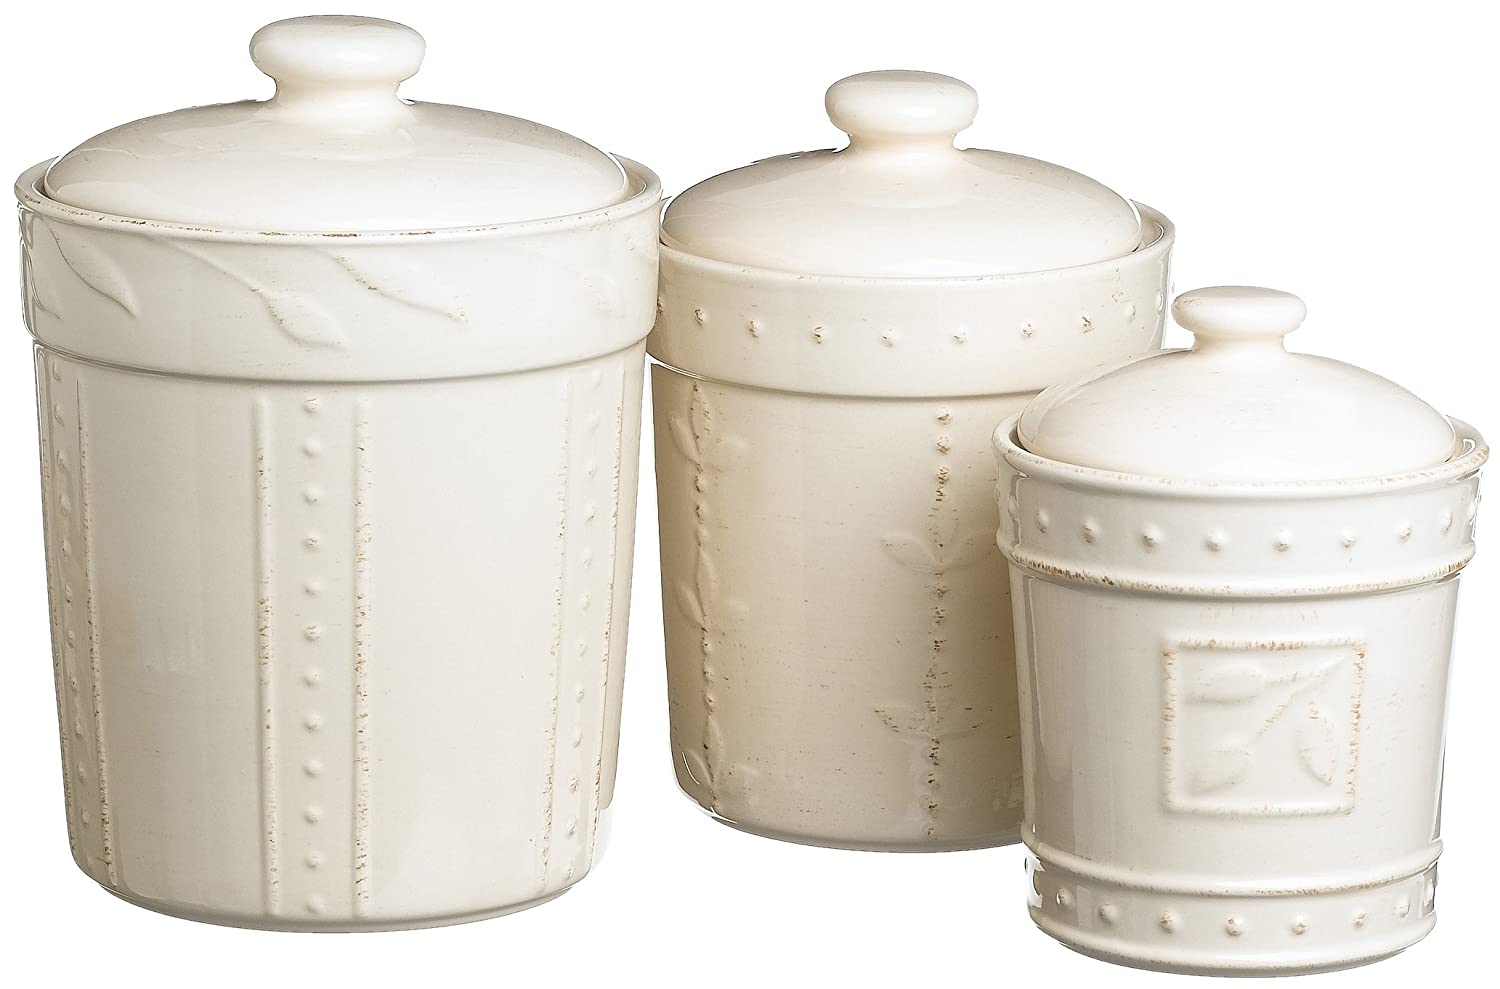 white kitchen canister set storage lid coffee flour sugar vintage flour and sugar canisters mushroom by